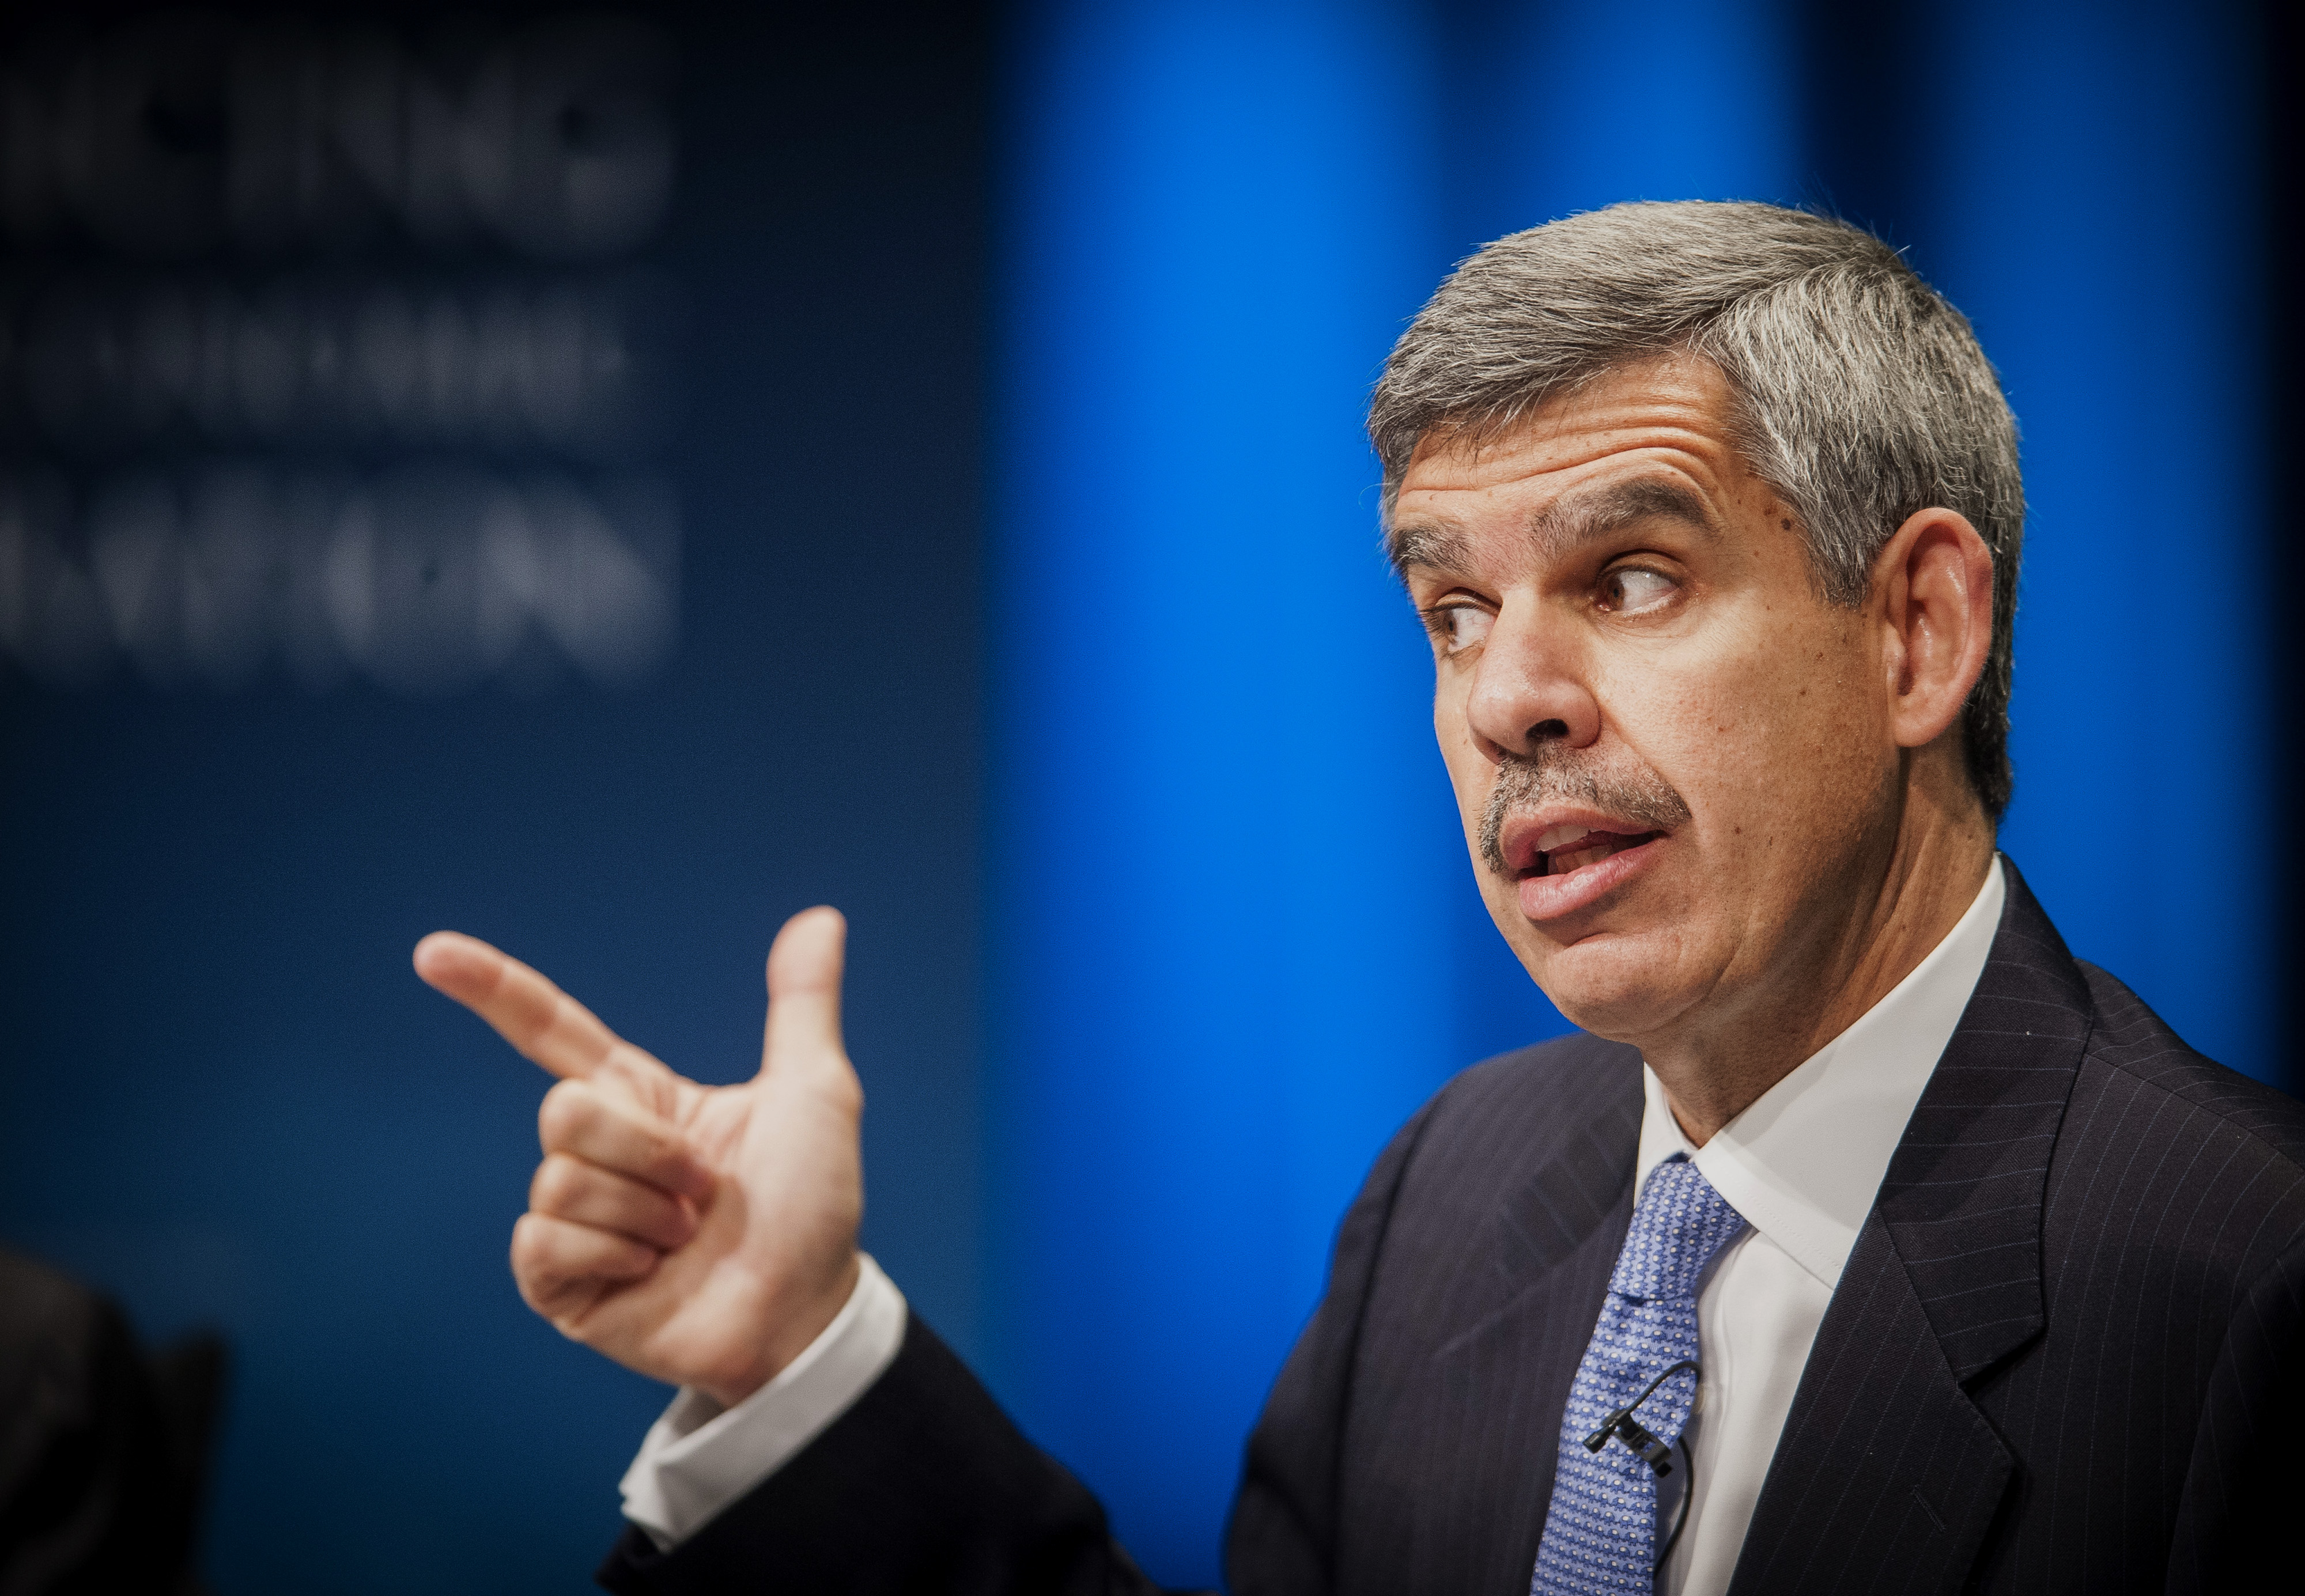 Mohamed El-Erian, chief economic advisor at Allianz SE, speaks during the 31st Annual Meeting of the Bretton Woods Committee at the World Bank